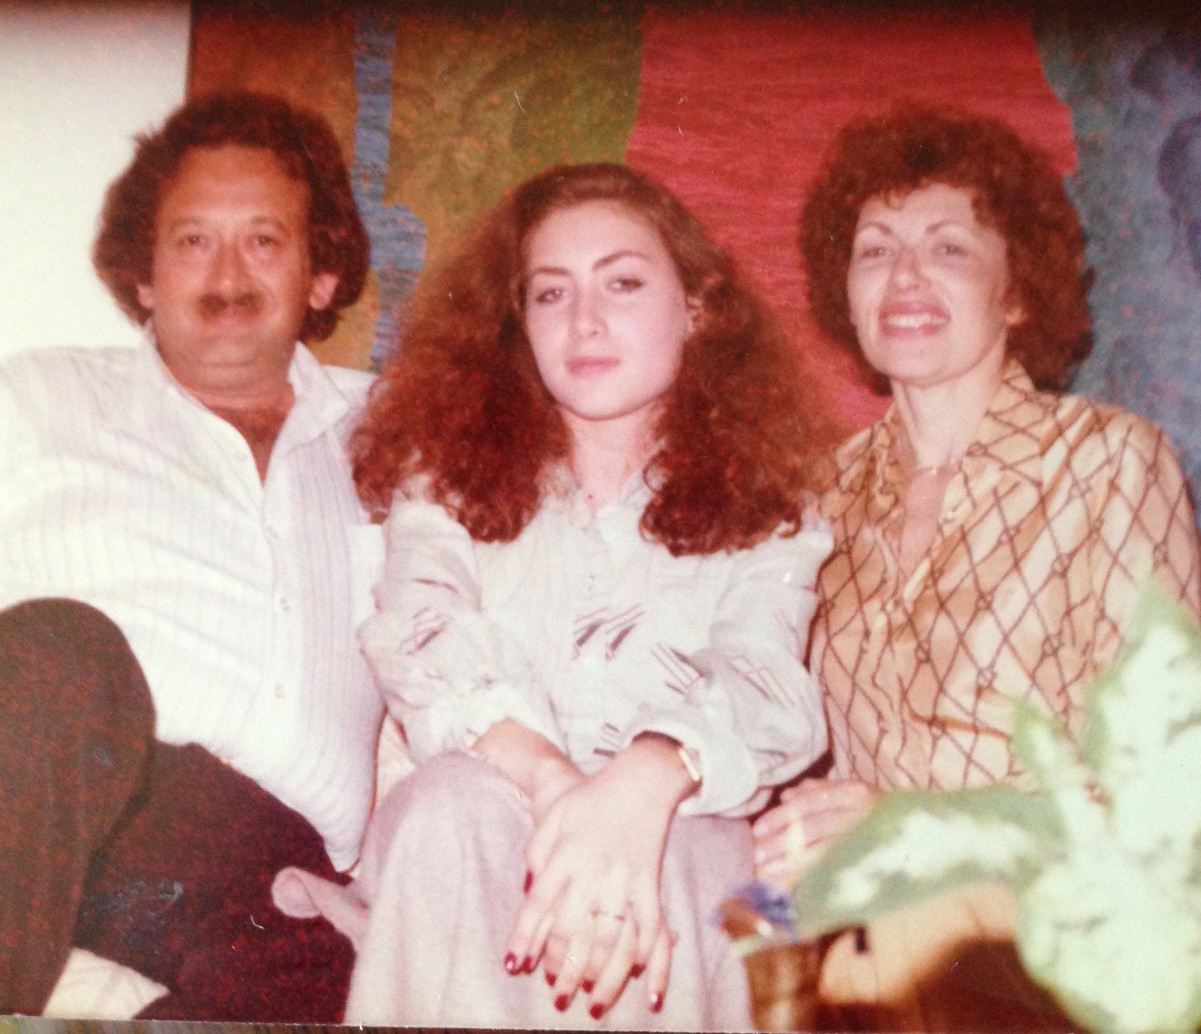 The author, with her mother and father in the 1970s.